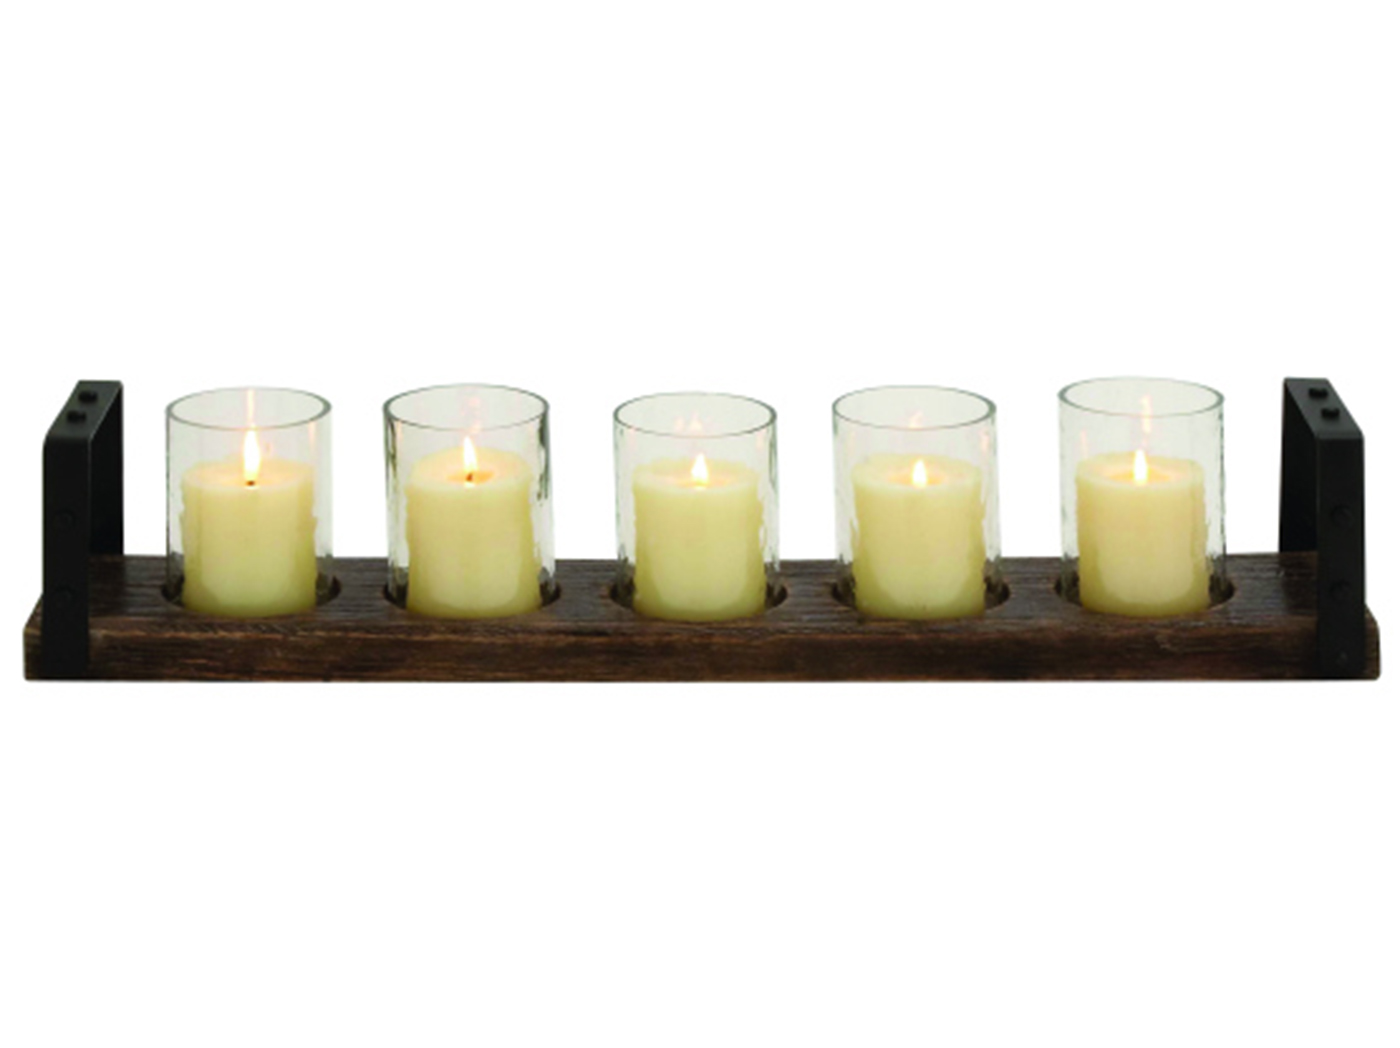 "Five Glass Candleholders In Wood Tray 28""L x 5""H"